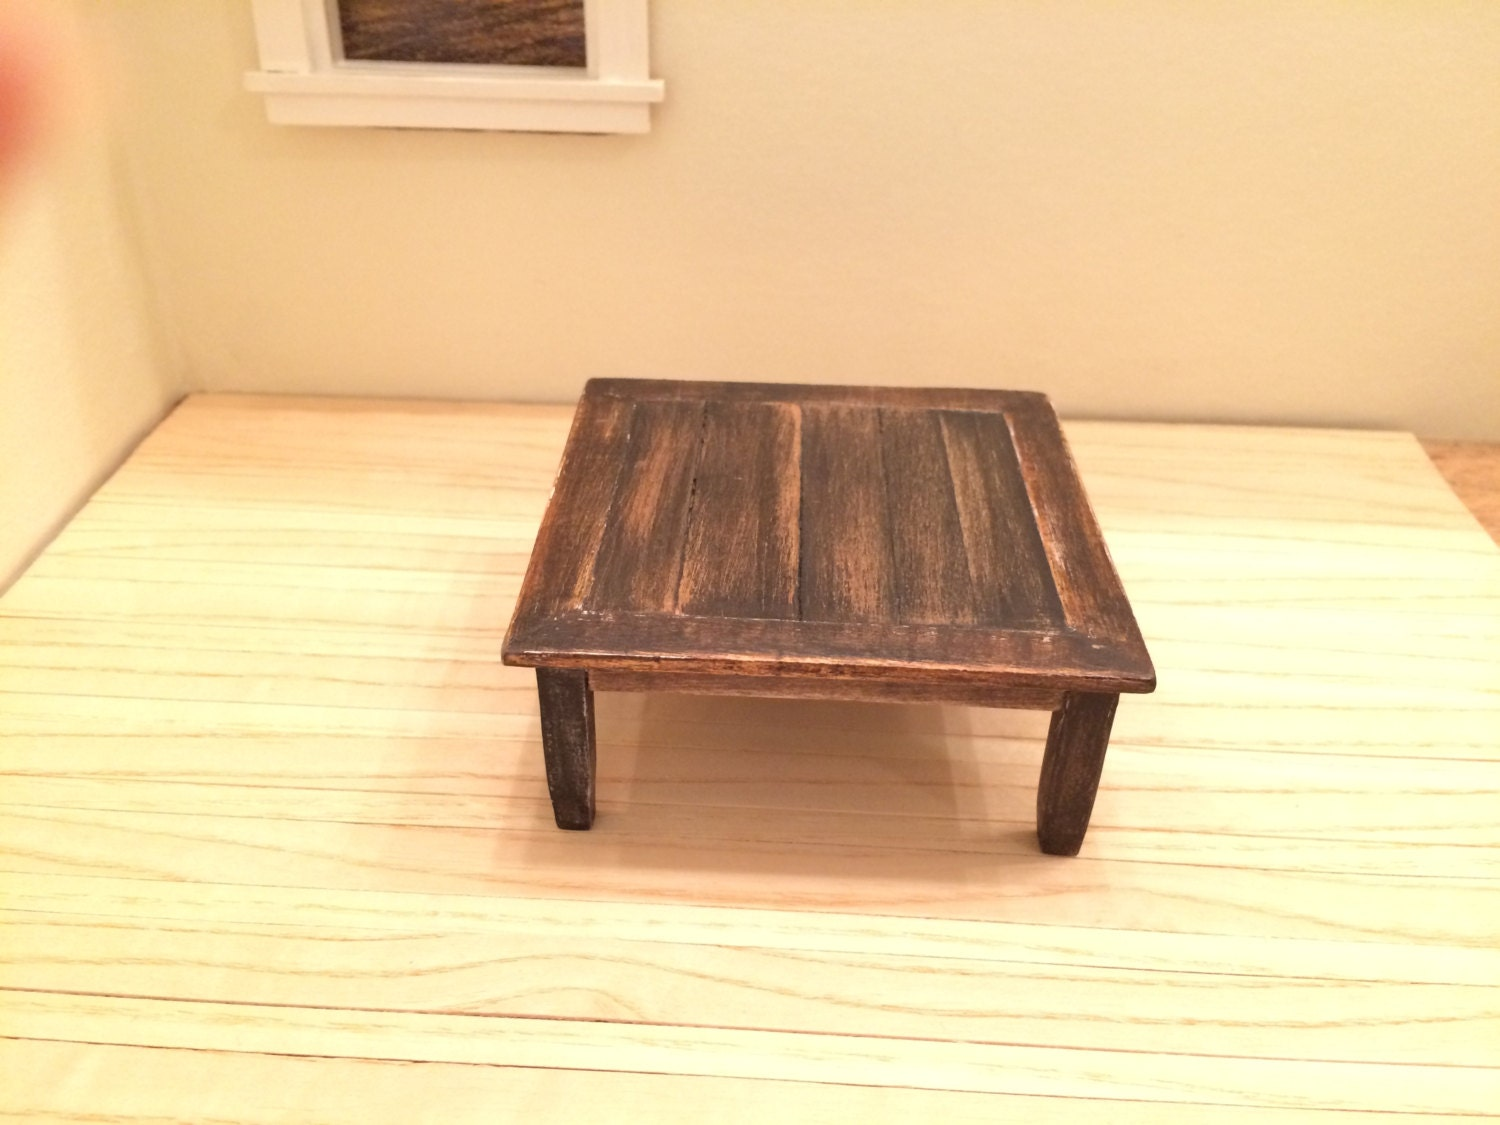 Dollhouse Miniature Square Rustic Coffee Table By Mockiesplace